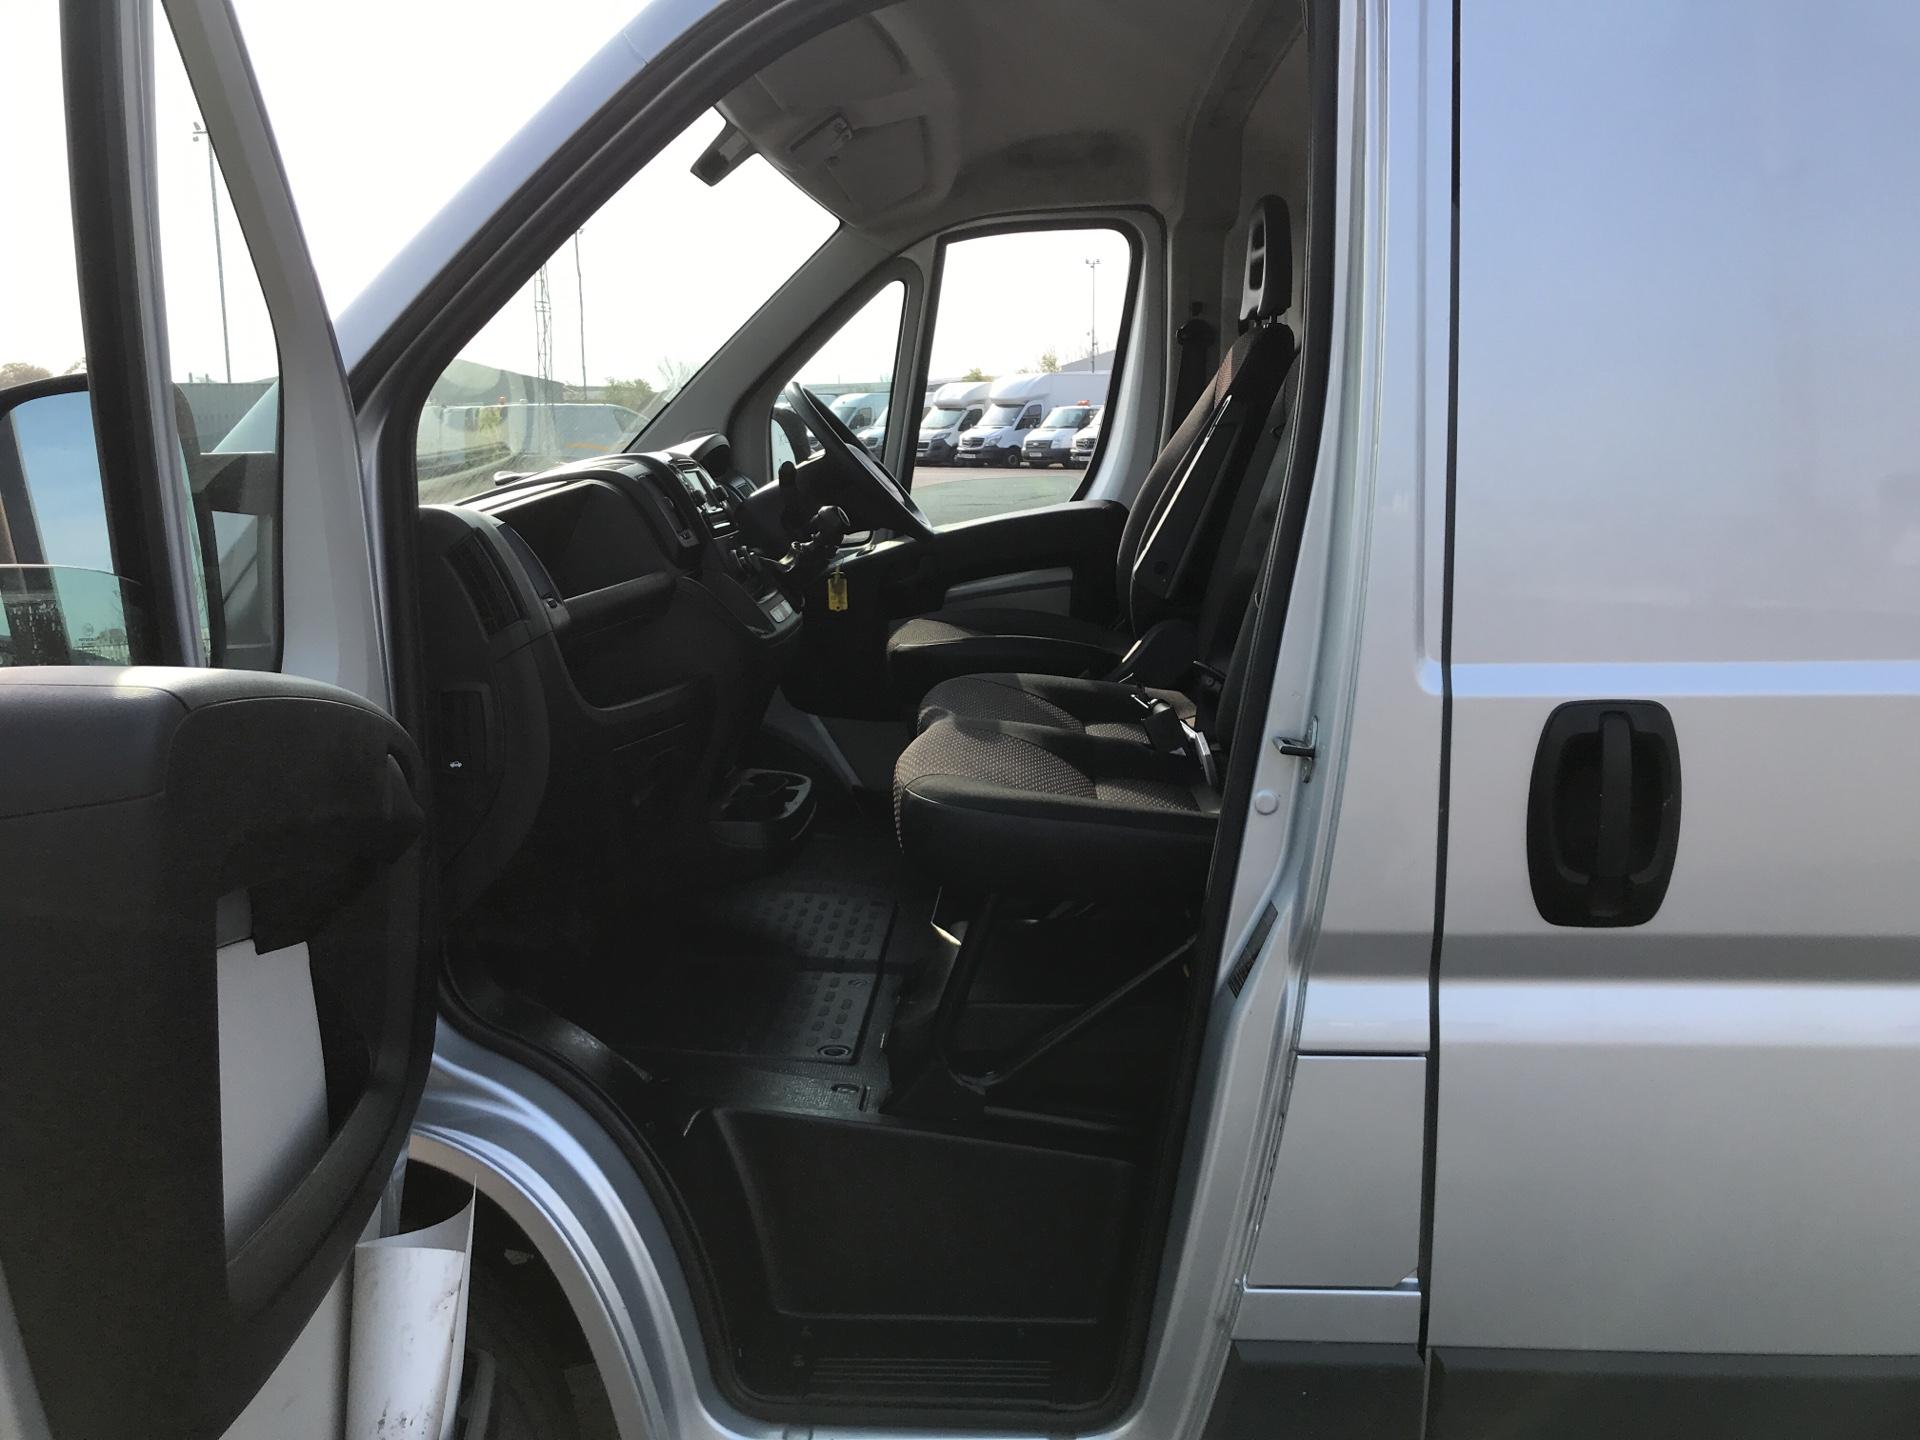 2016 Peugeot Boxer 2.0 Bluehdi H1  Professional Van 110Ps *VALUE RANGE VEHICLE CONDITION REFLECTED IN PRICE* (NG16NMO) Image 14